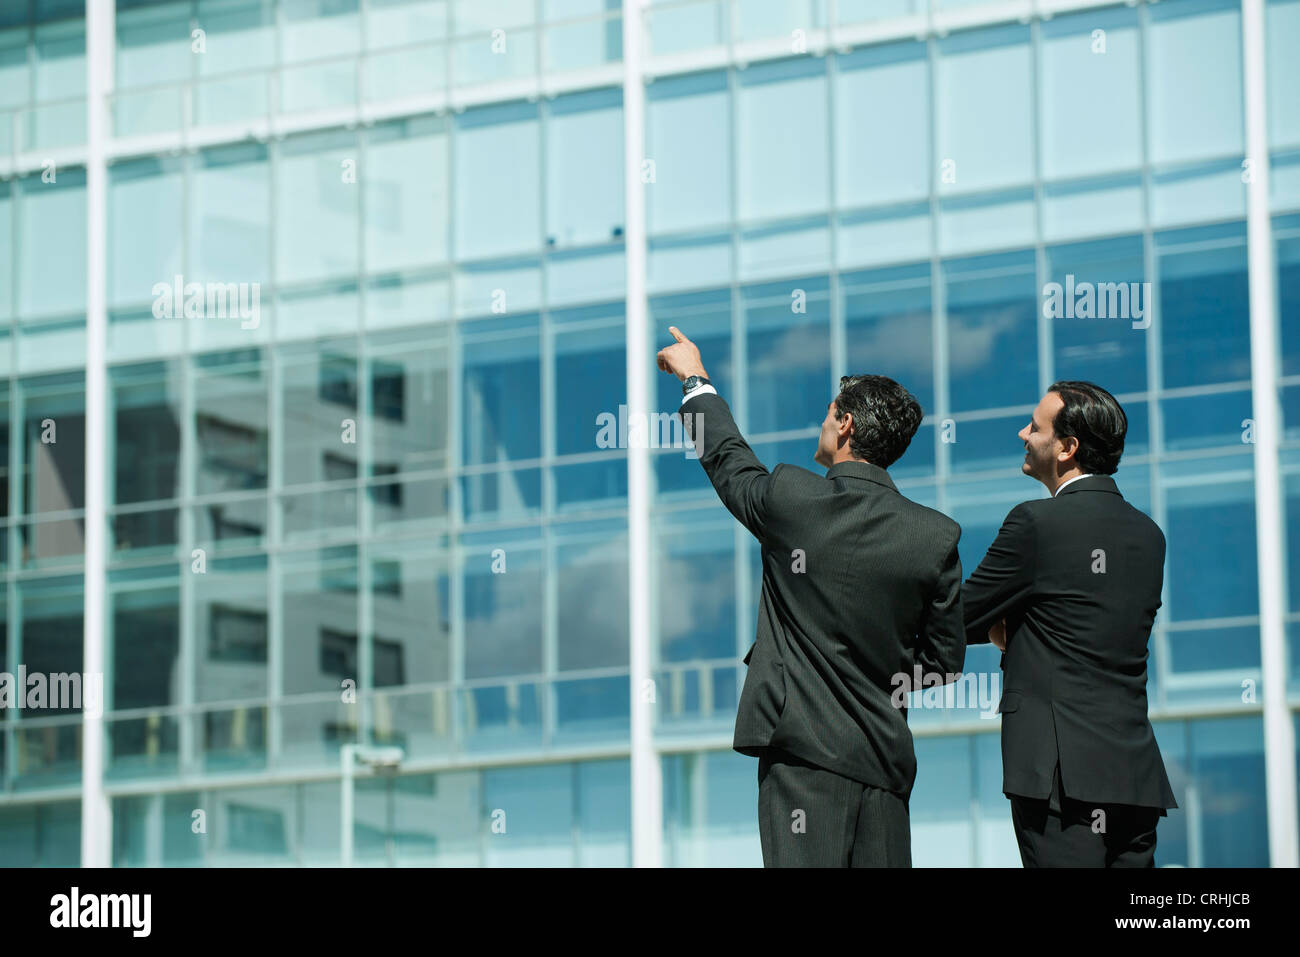 Business executives standing in front of office building, one pointing into distance - Stock Image